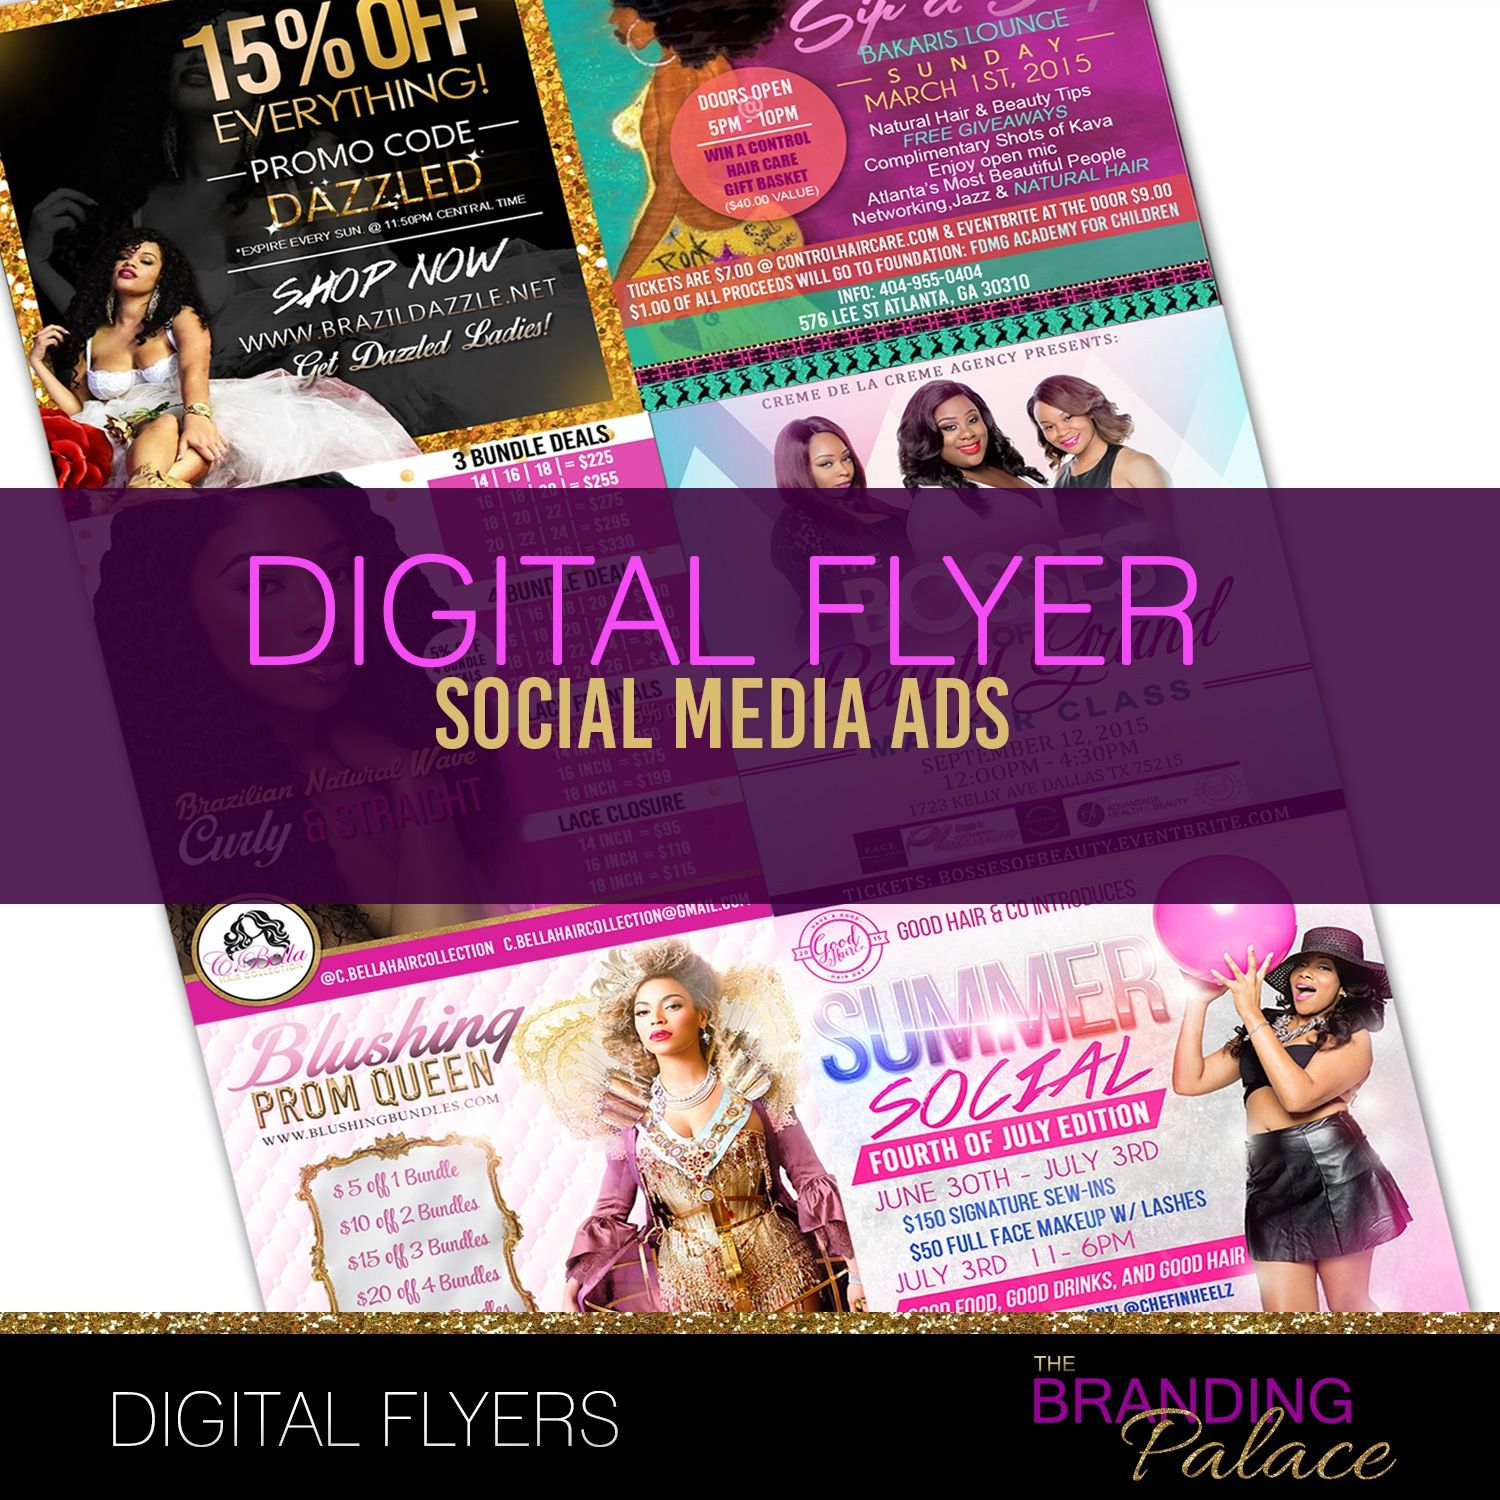 digital flyers are a must have create an eye catching flyer for